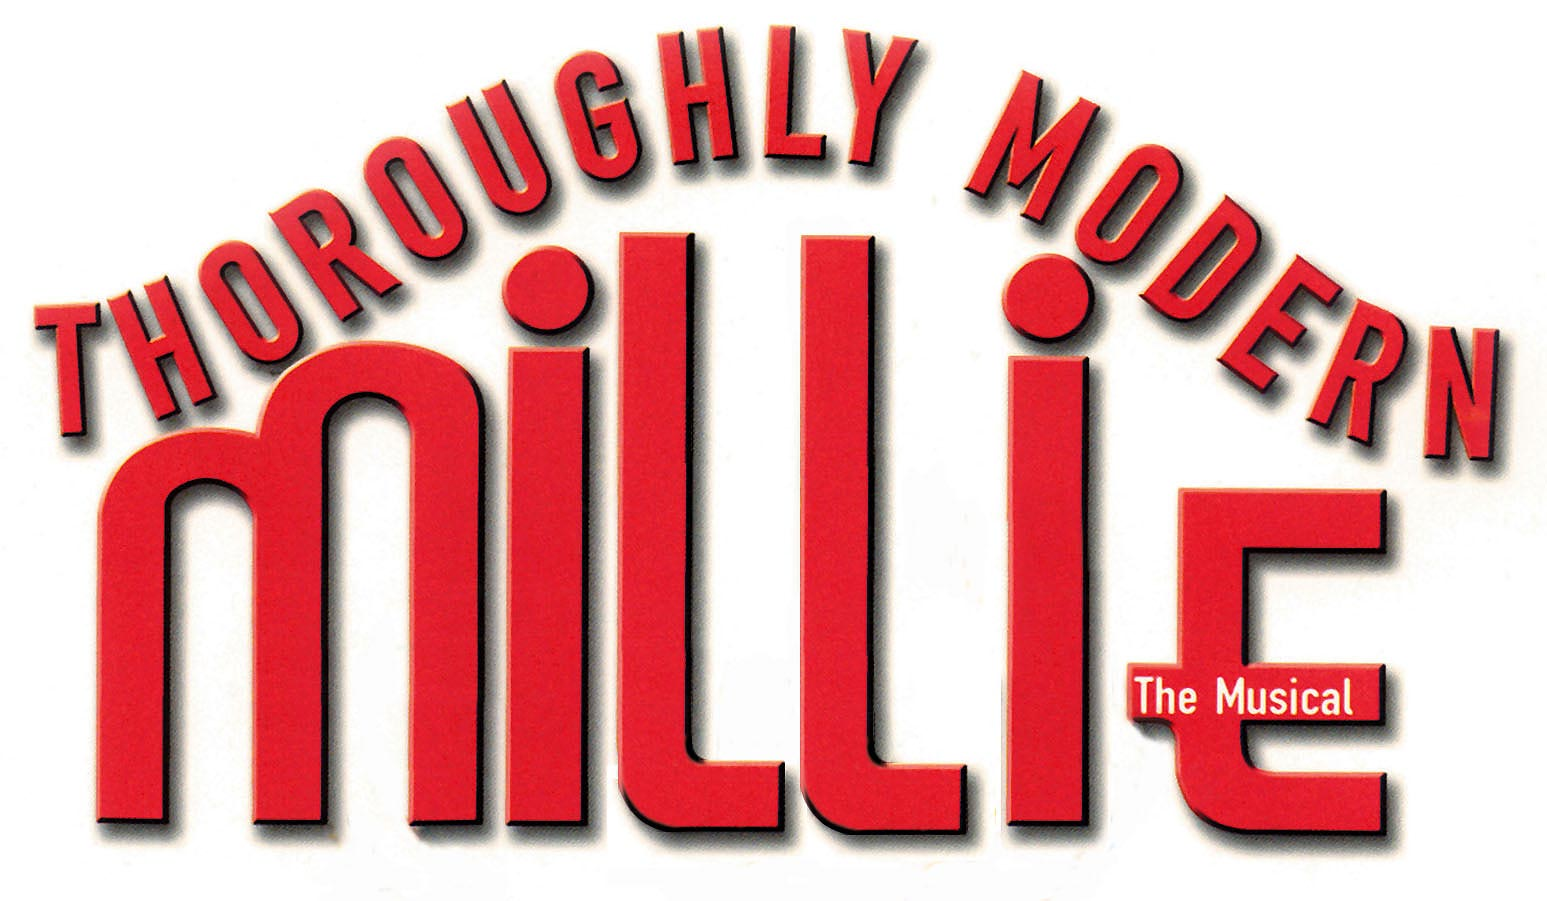 1547x901 Thoroughly Modern Millie Clipart Amp Thoroughly Modern Millie Clip